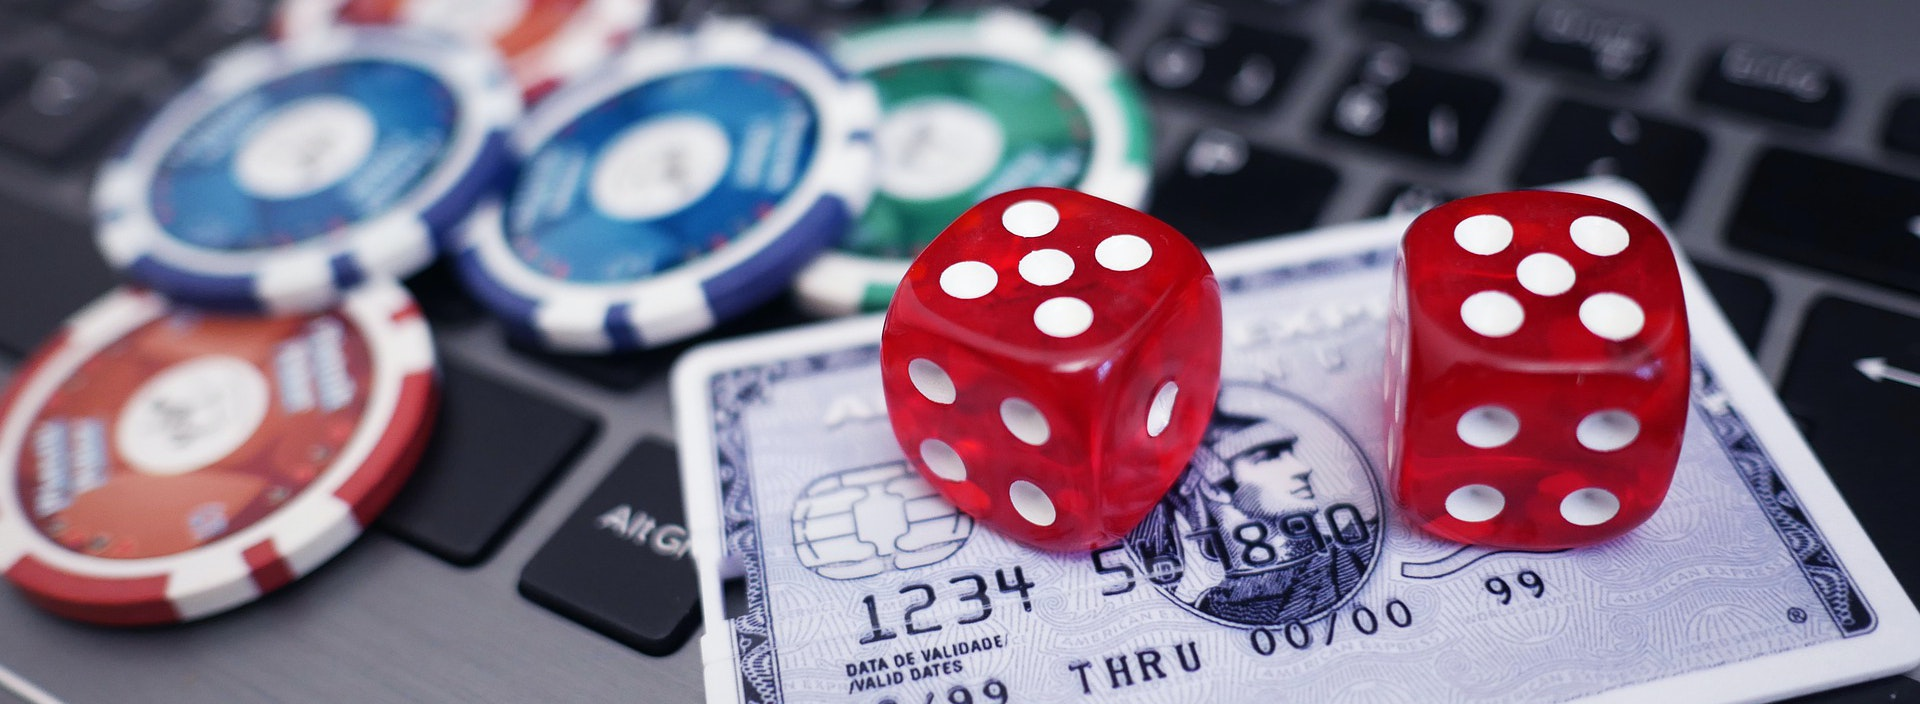 5 Online Casino Tips That Work Like A Charm